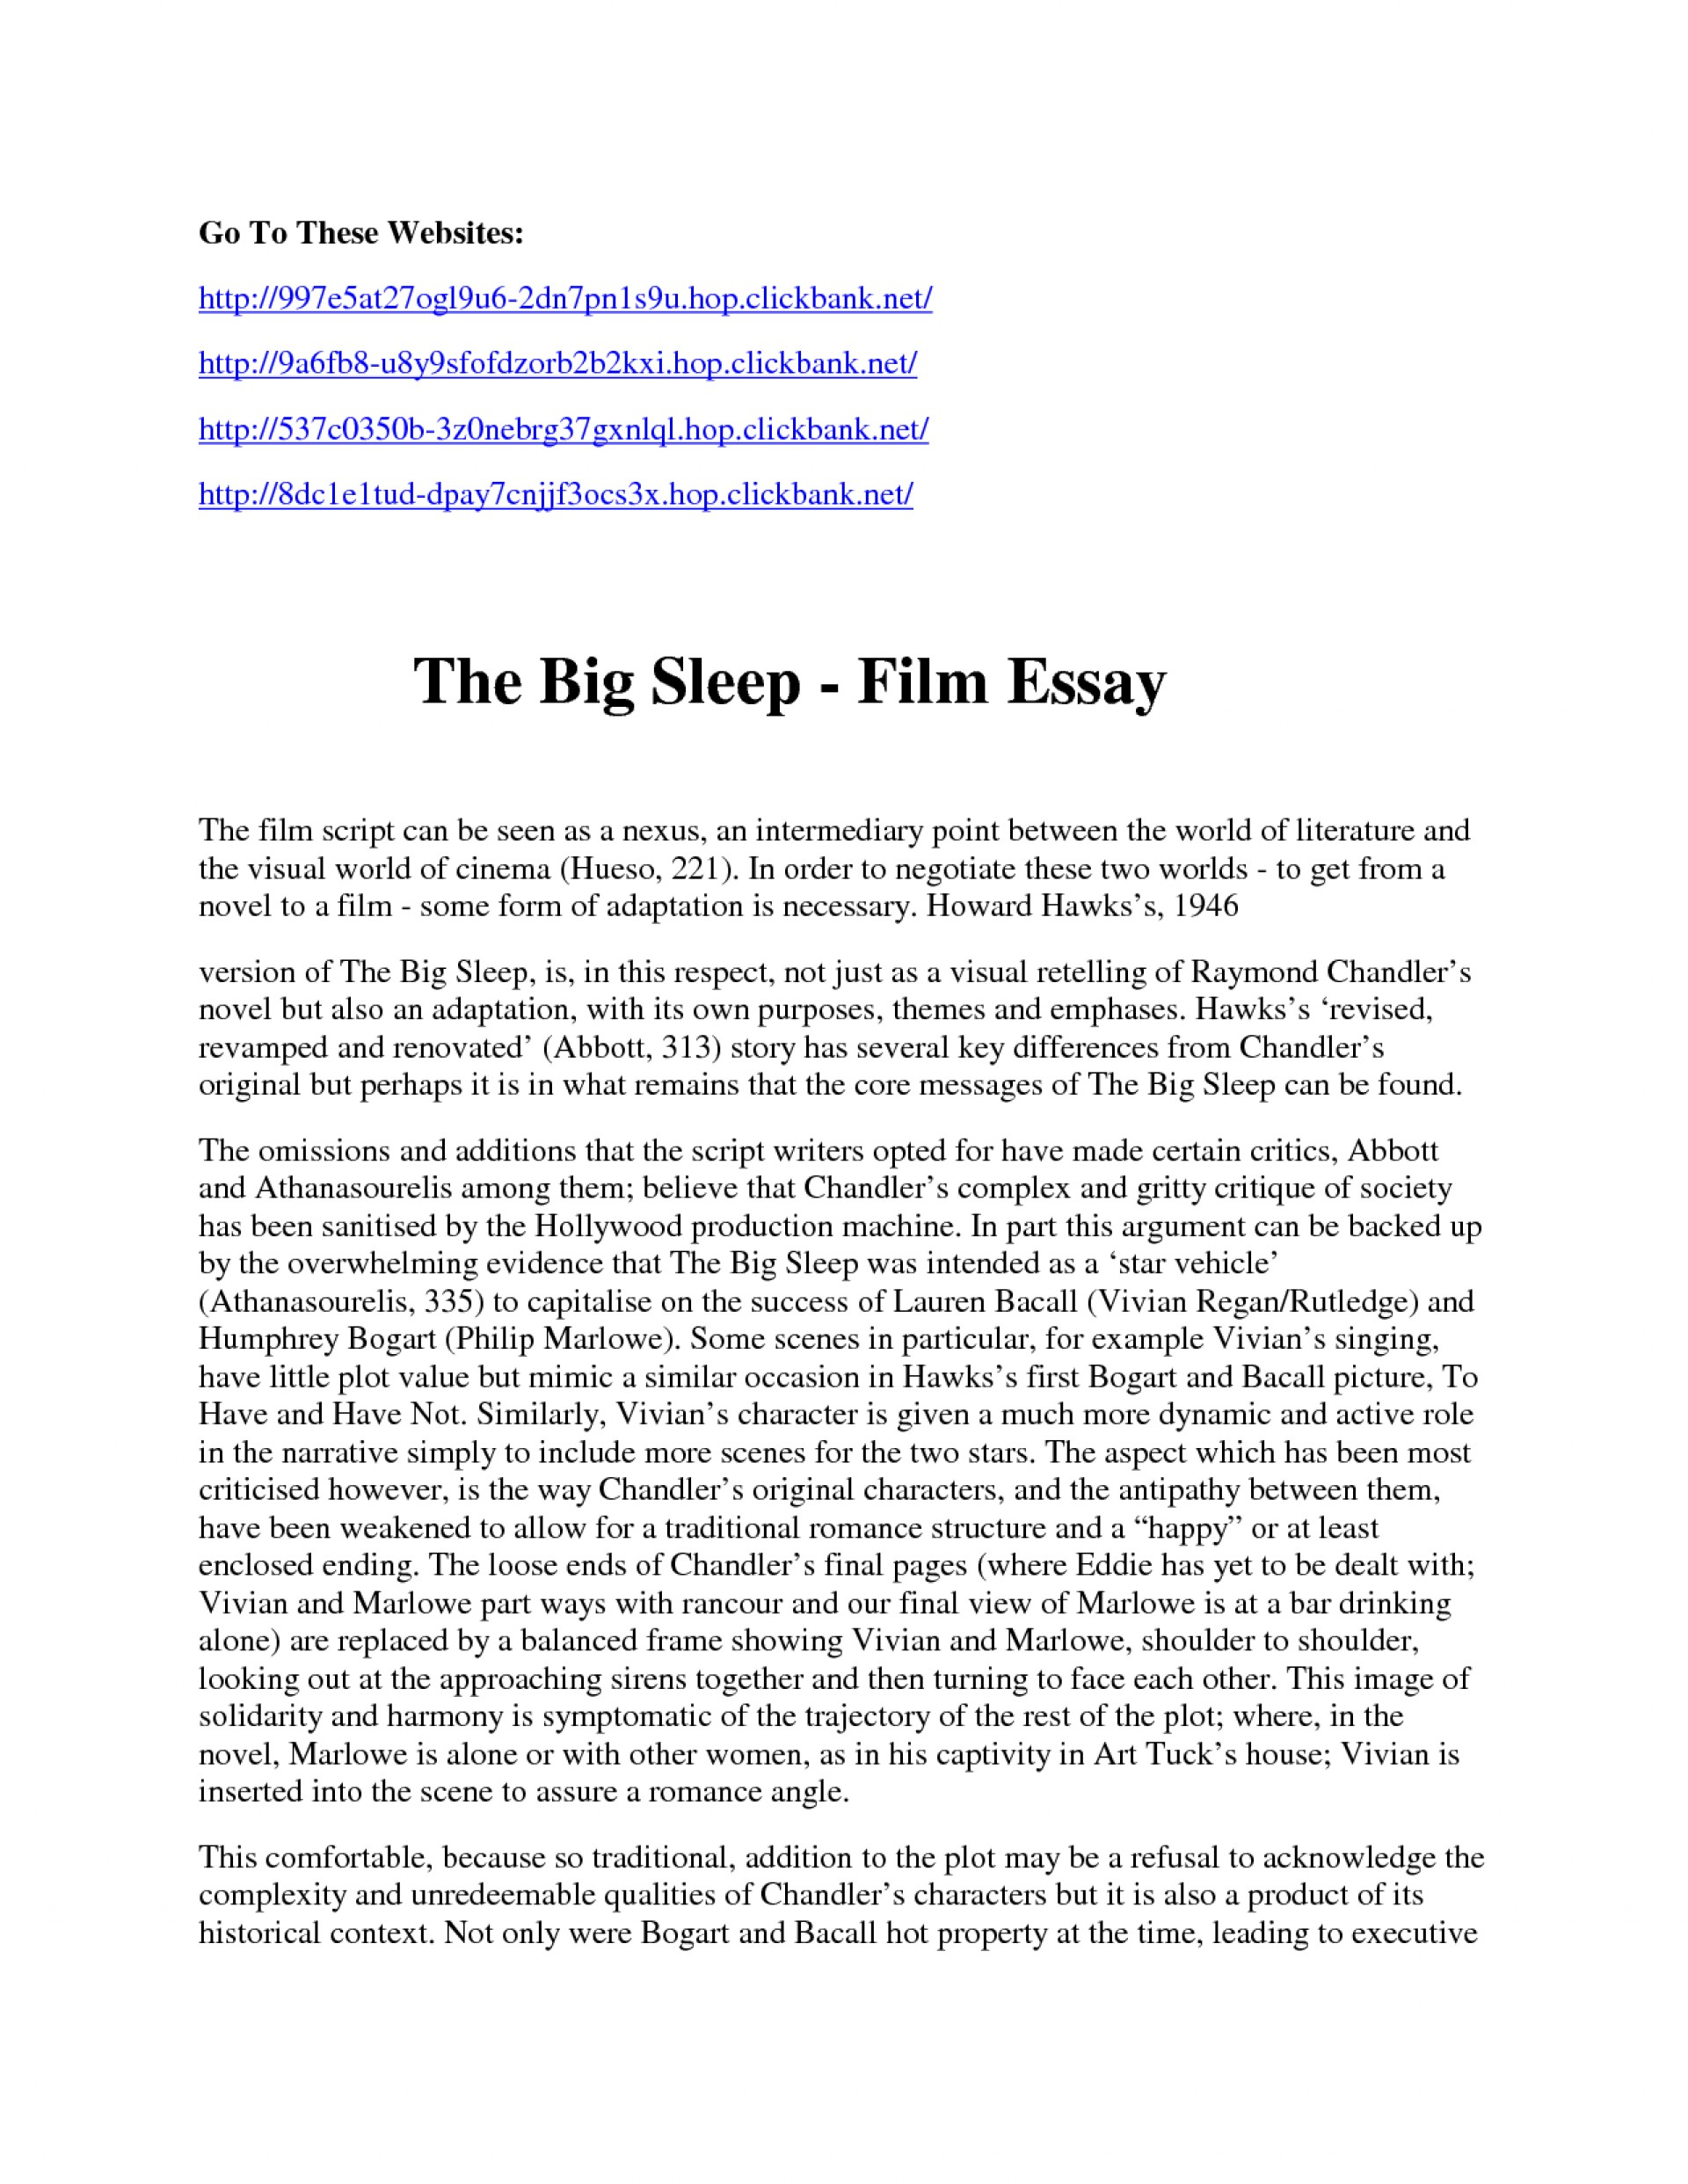 critique paper sample of a movie